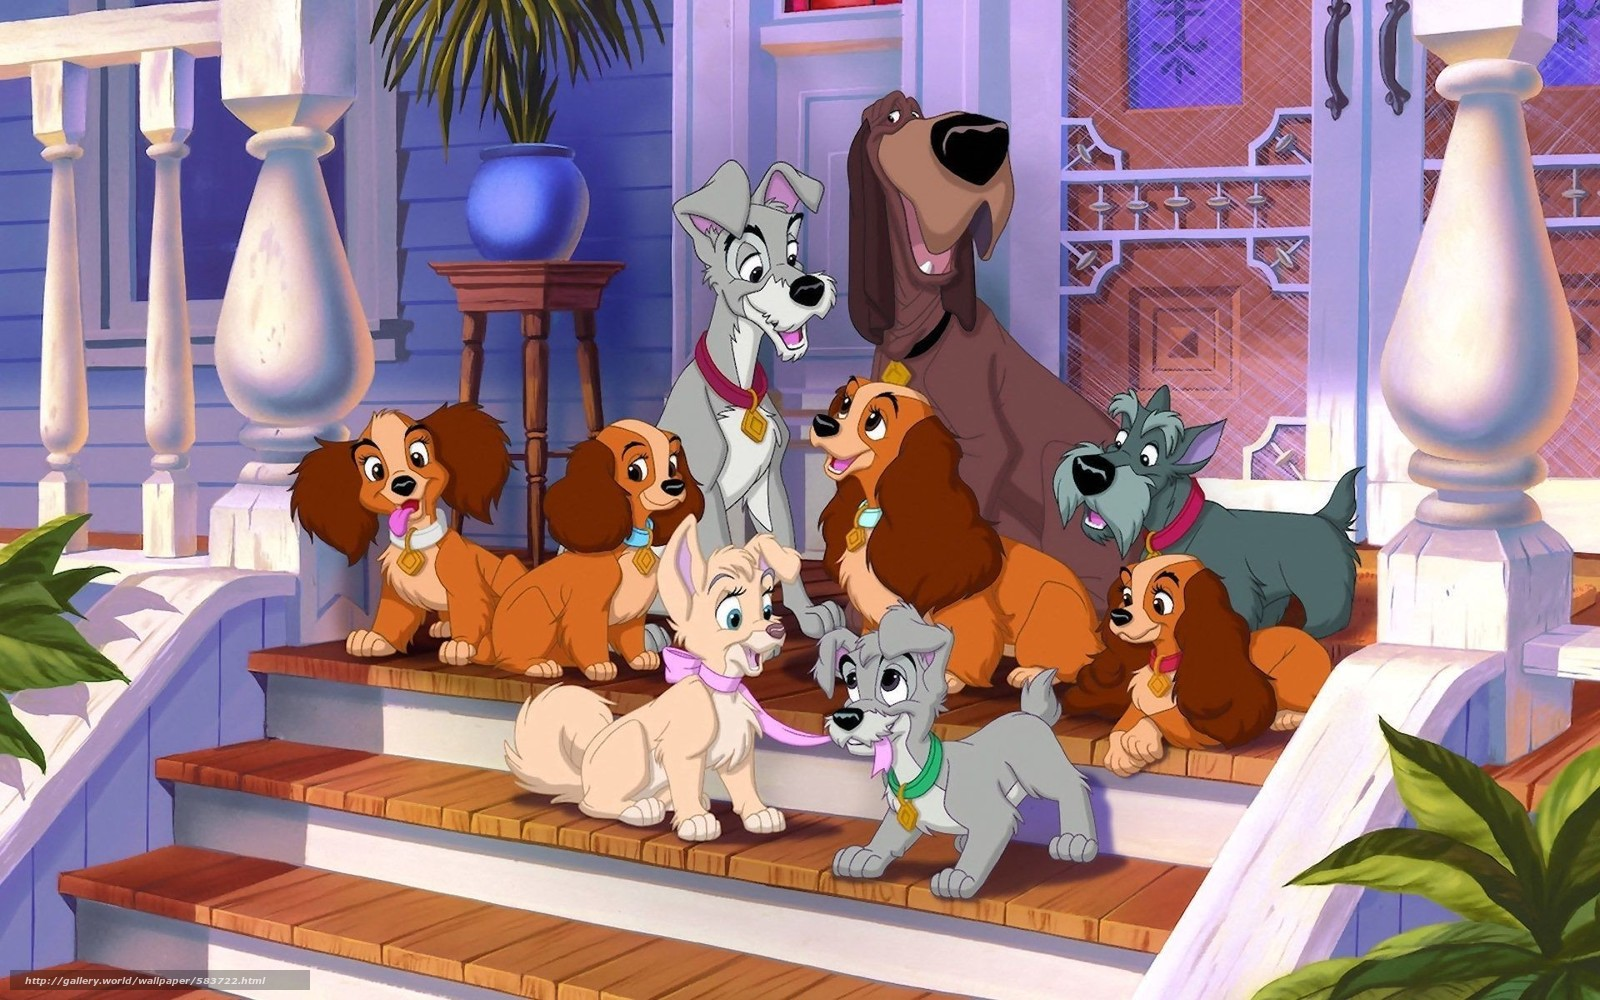 Characters, Heroes, lady, Puppies, Tramp, cartoon, Cartoon, Dog, Trustee, Jock, porch, Lady and the Tramp, home